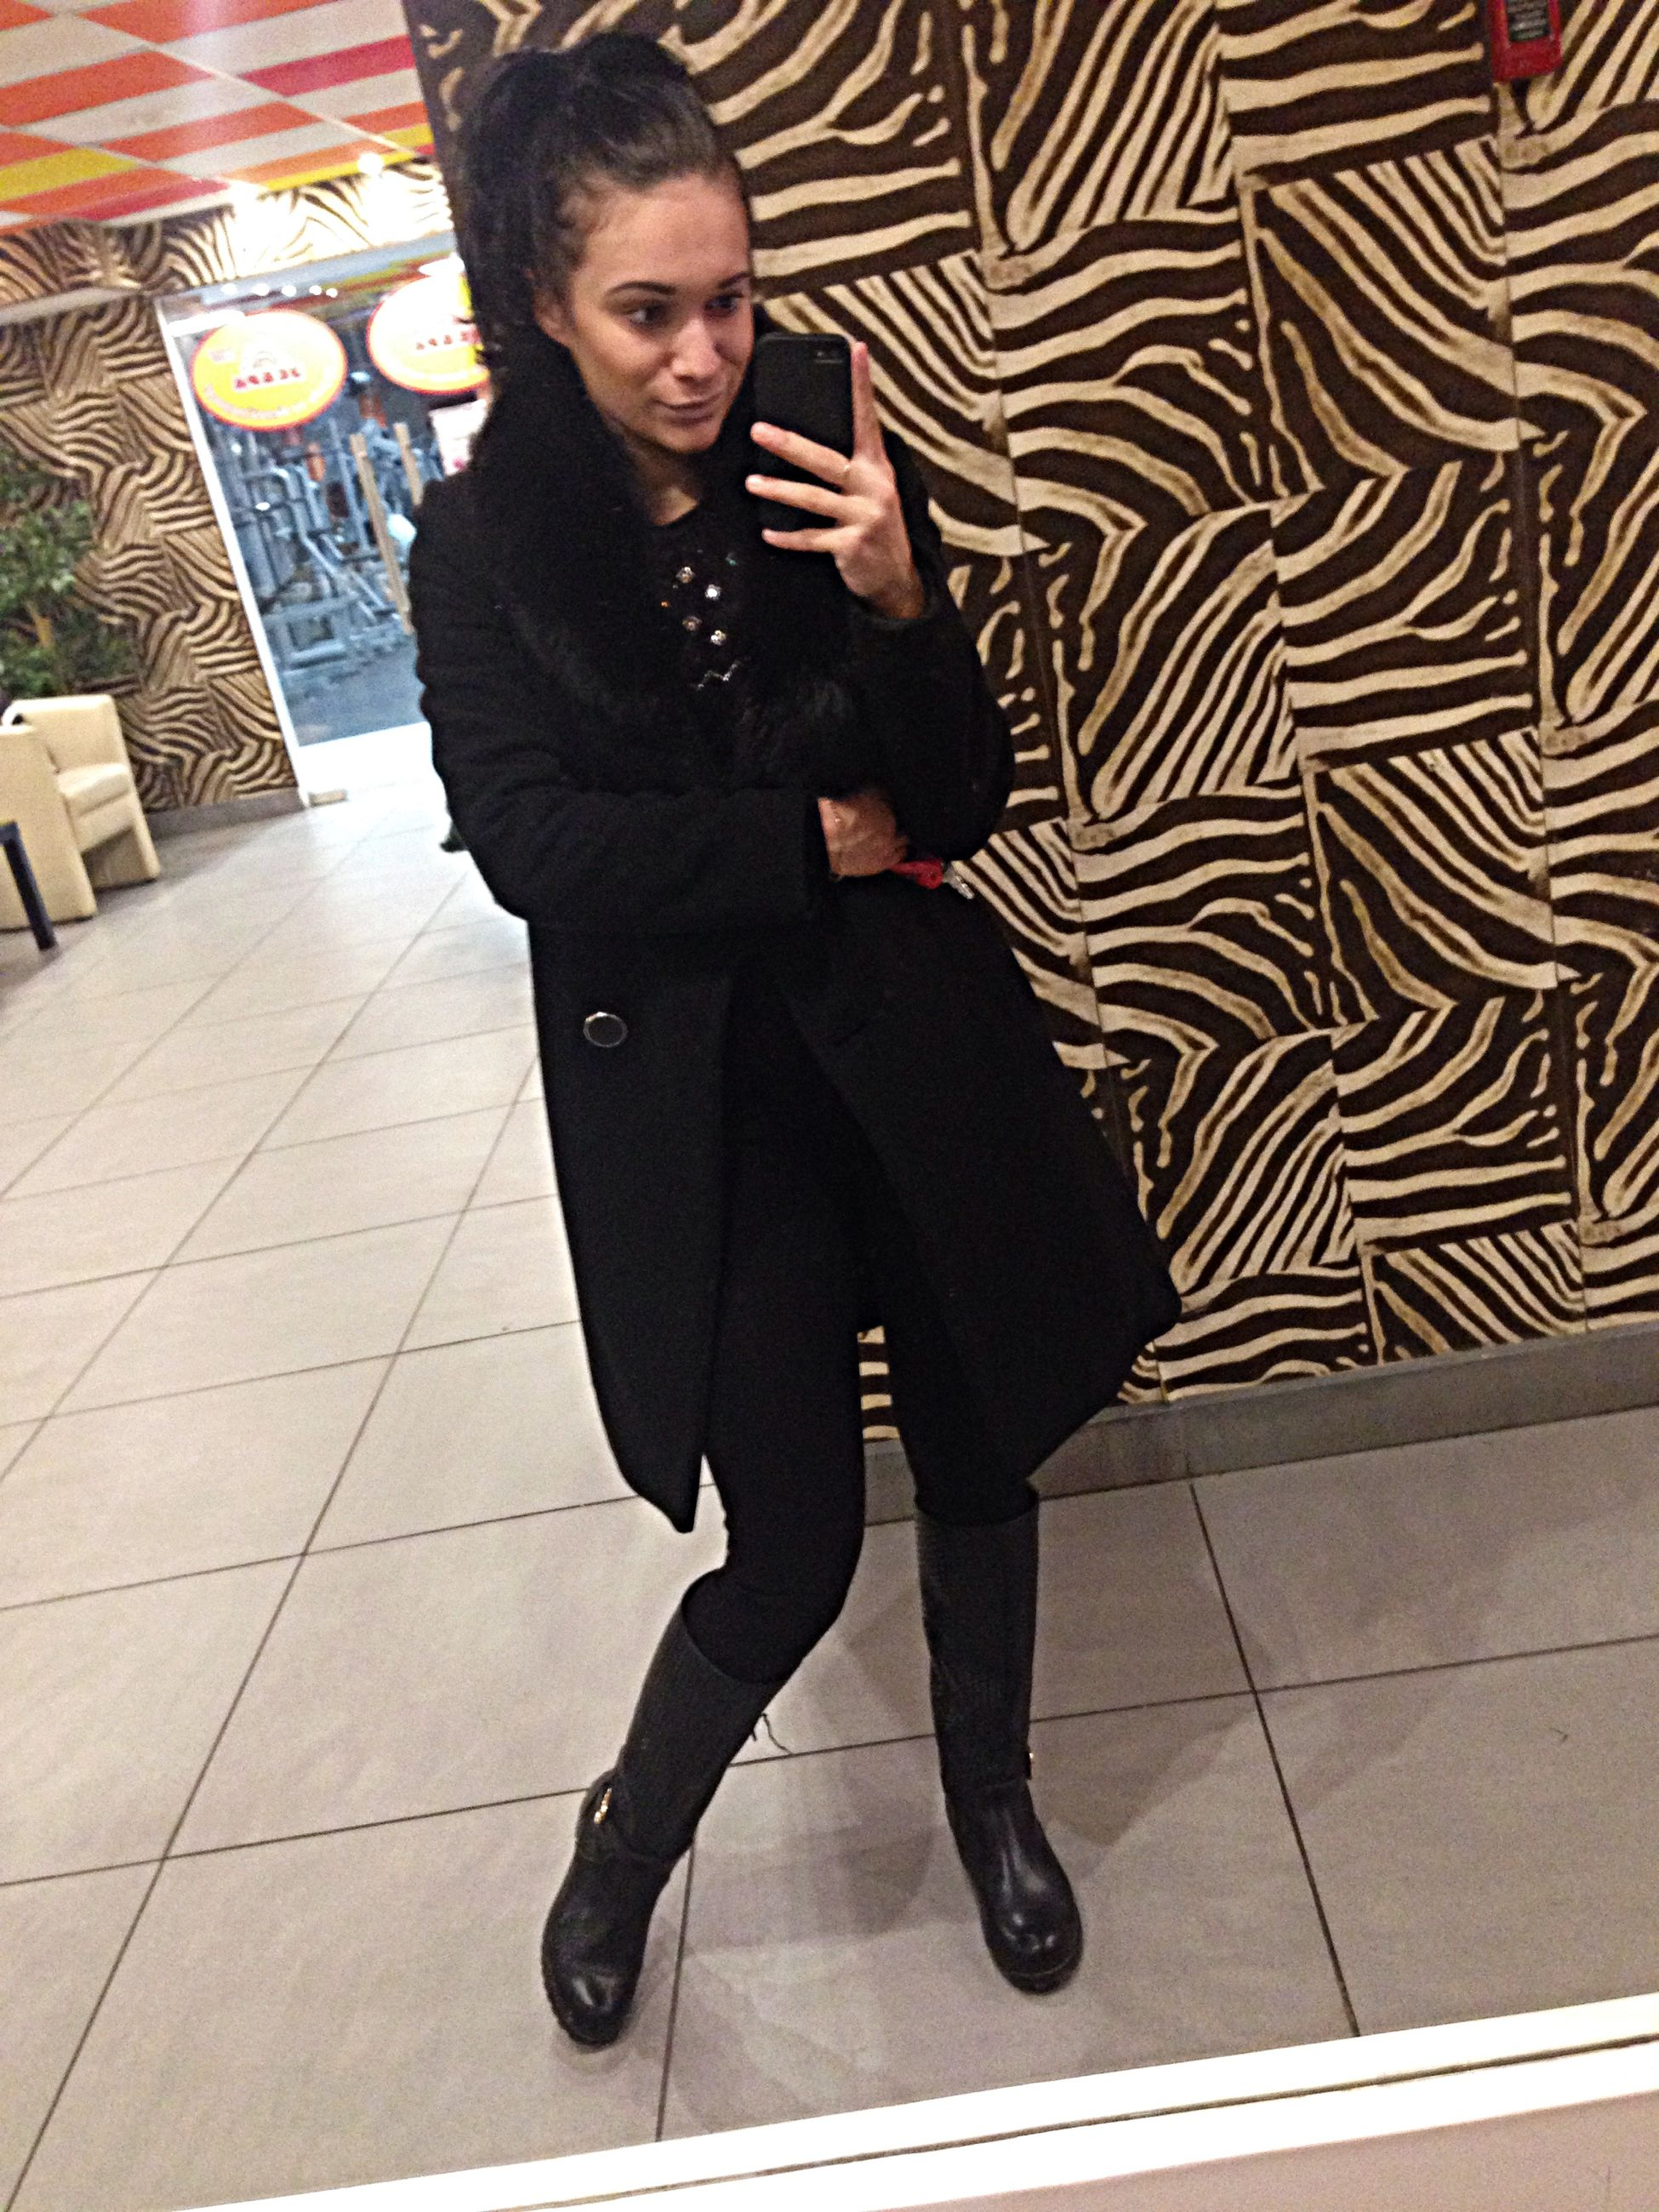 casual clothing, lifestyles, full length, young adult, front view, standing, looking at camera, person, portrait, leisure activity, young women, indoors, wall - building feature, fashion, tiled floor, high angle view, three quarter length, fashionable